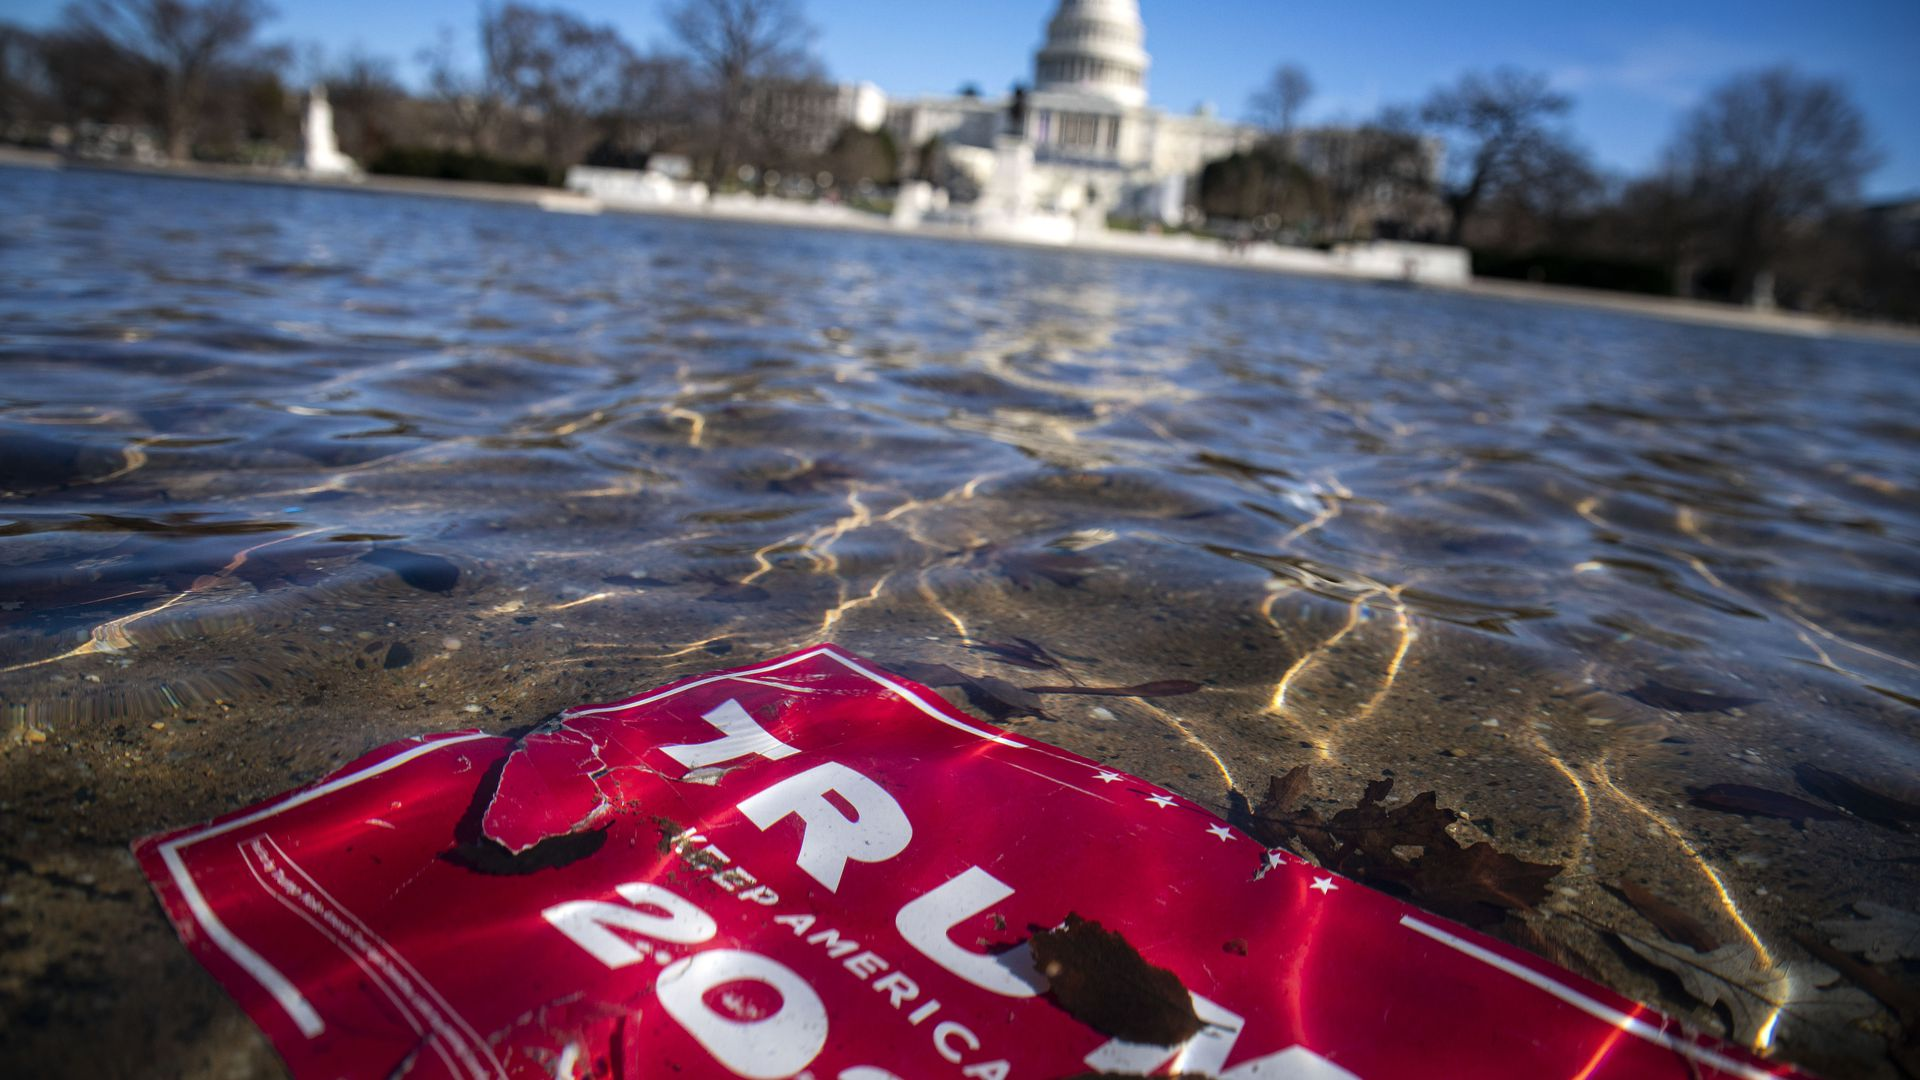 Trump campaign sign floats in river near the Capitol building.